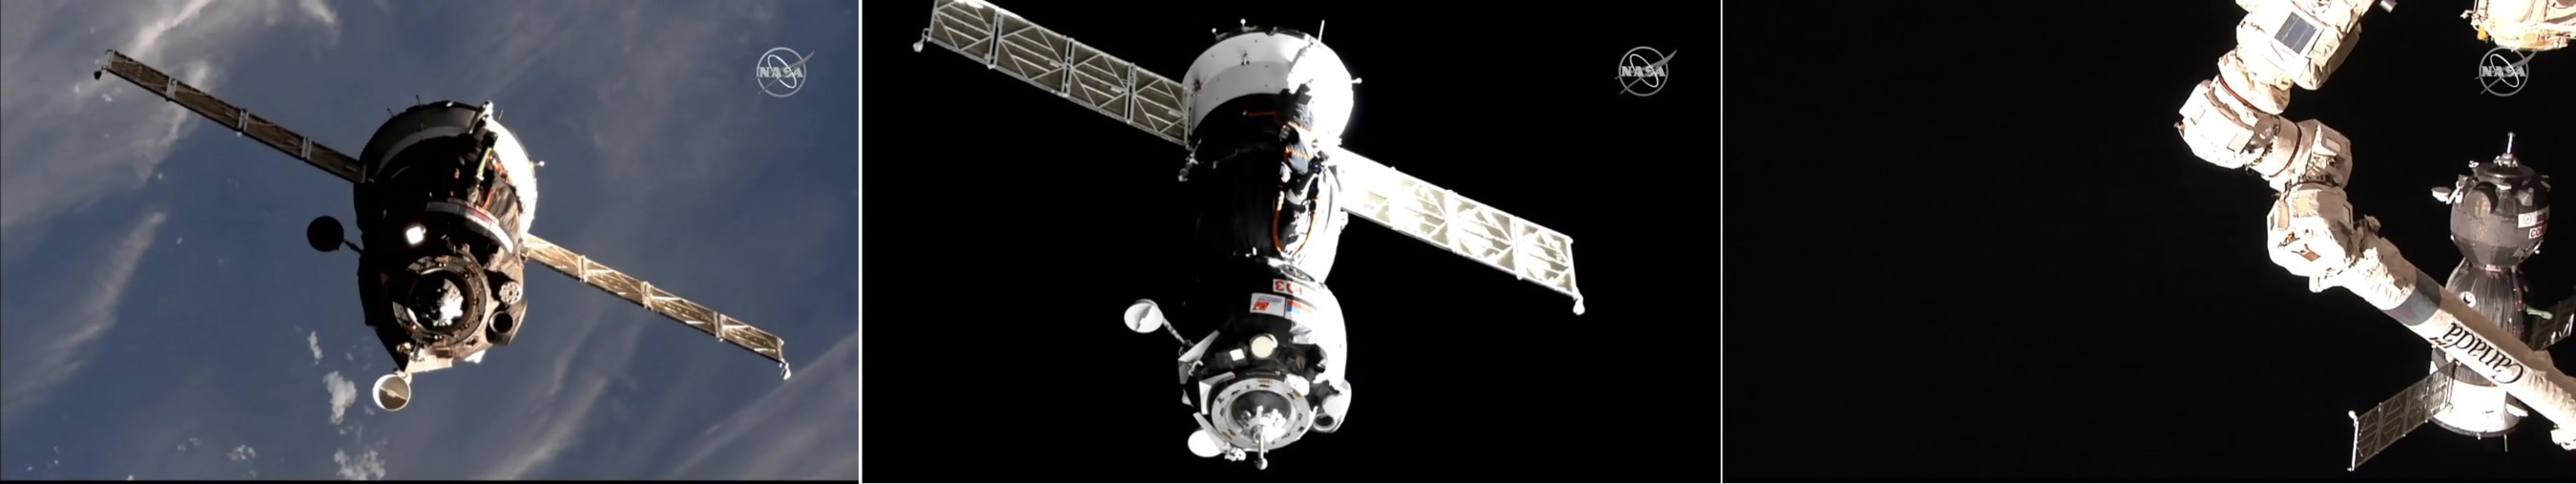 This image compilation shows the Soyuz spacecraft carrying astronauts Nick Hague and Christina Koch of NASA and cosmonaut Alexey Ovchinin of the Russian space agency Roscosmos at a distance of 70, 15 and less than two meters from the International Space Station, where it docked at 9:01 p.m. EST March 14, 2019. Credits: NASA Television